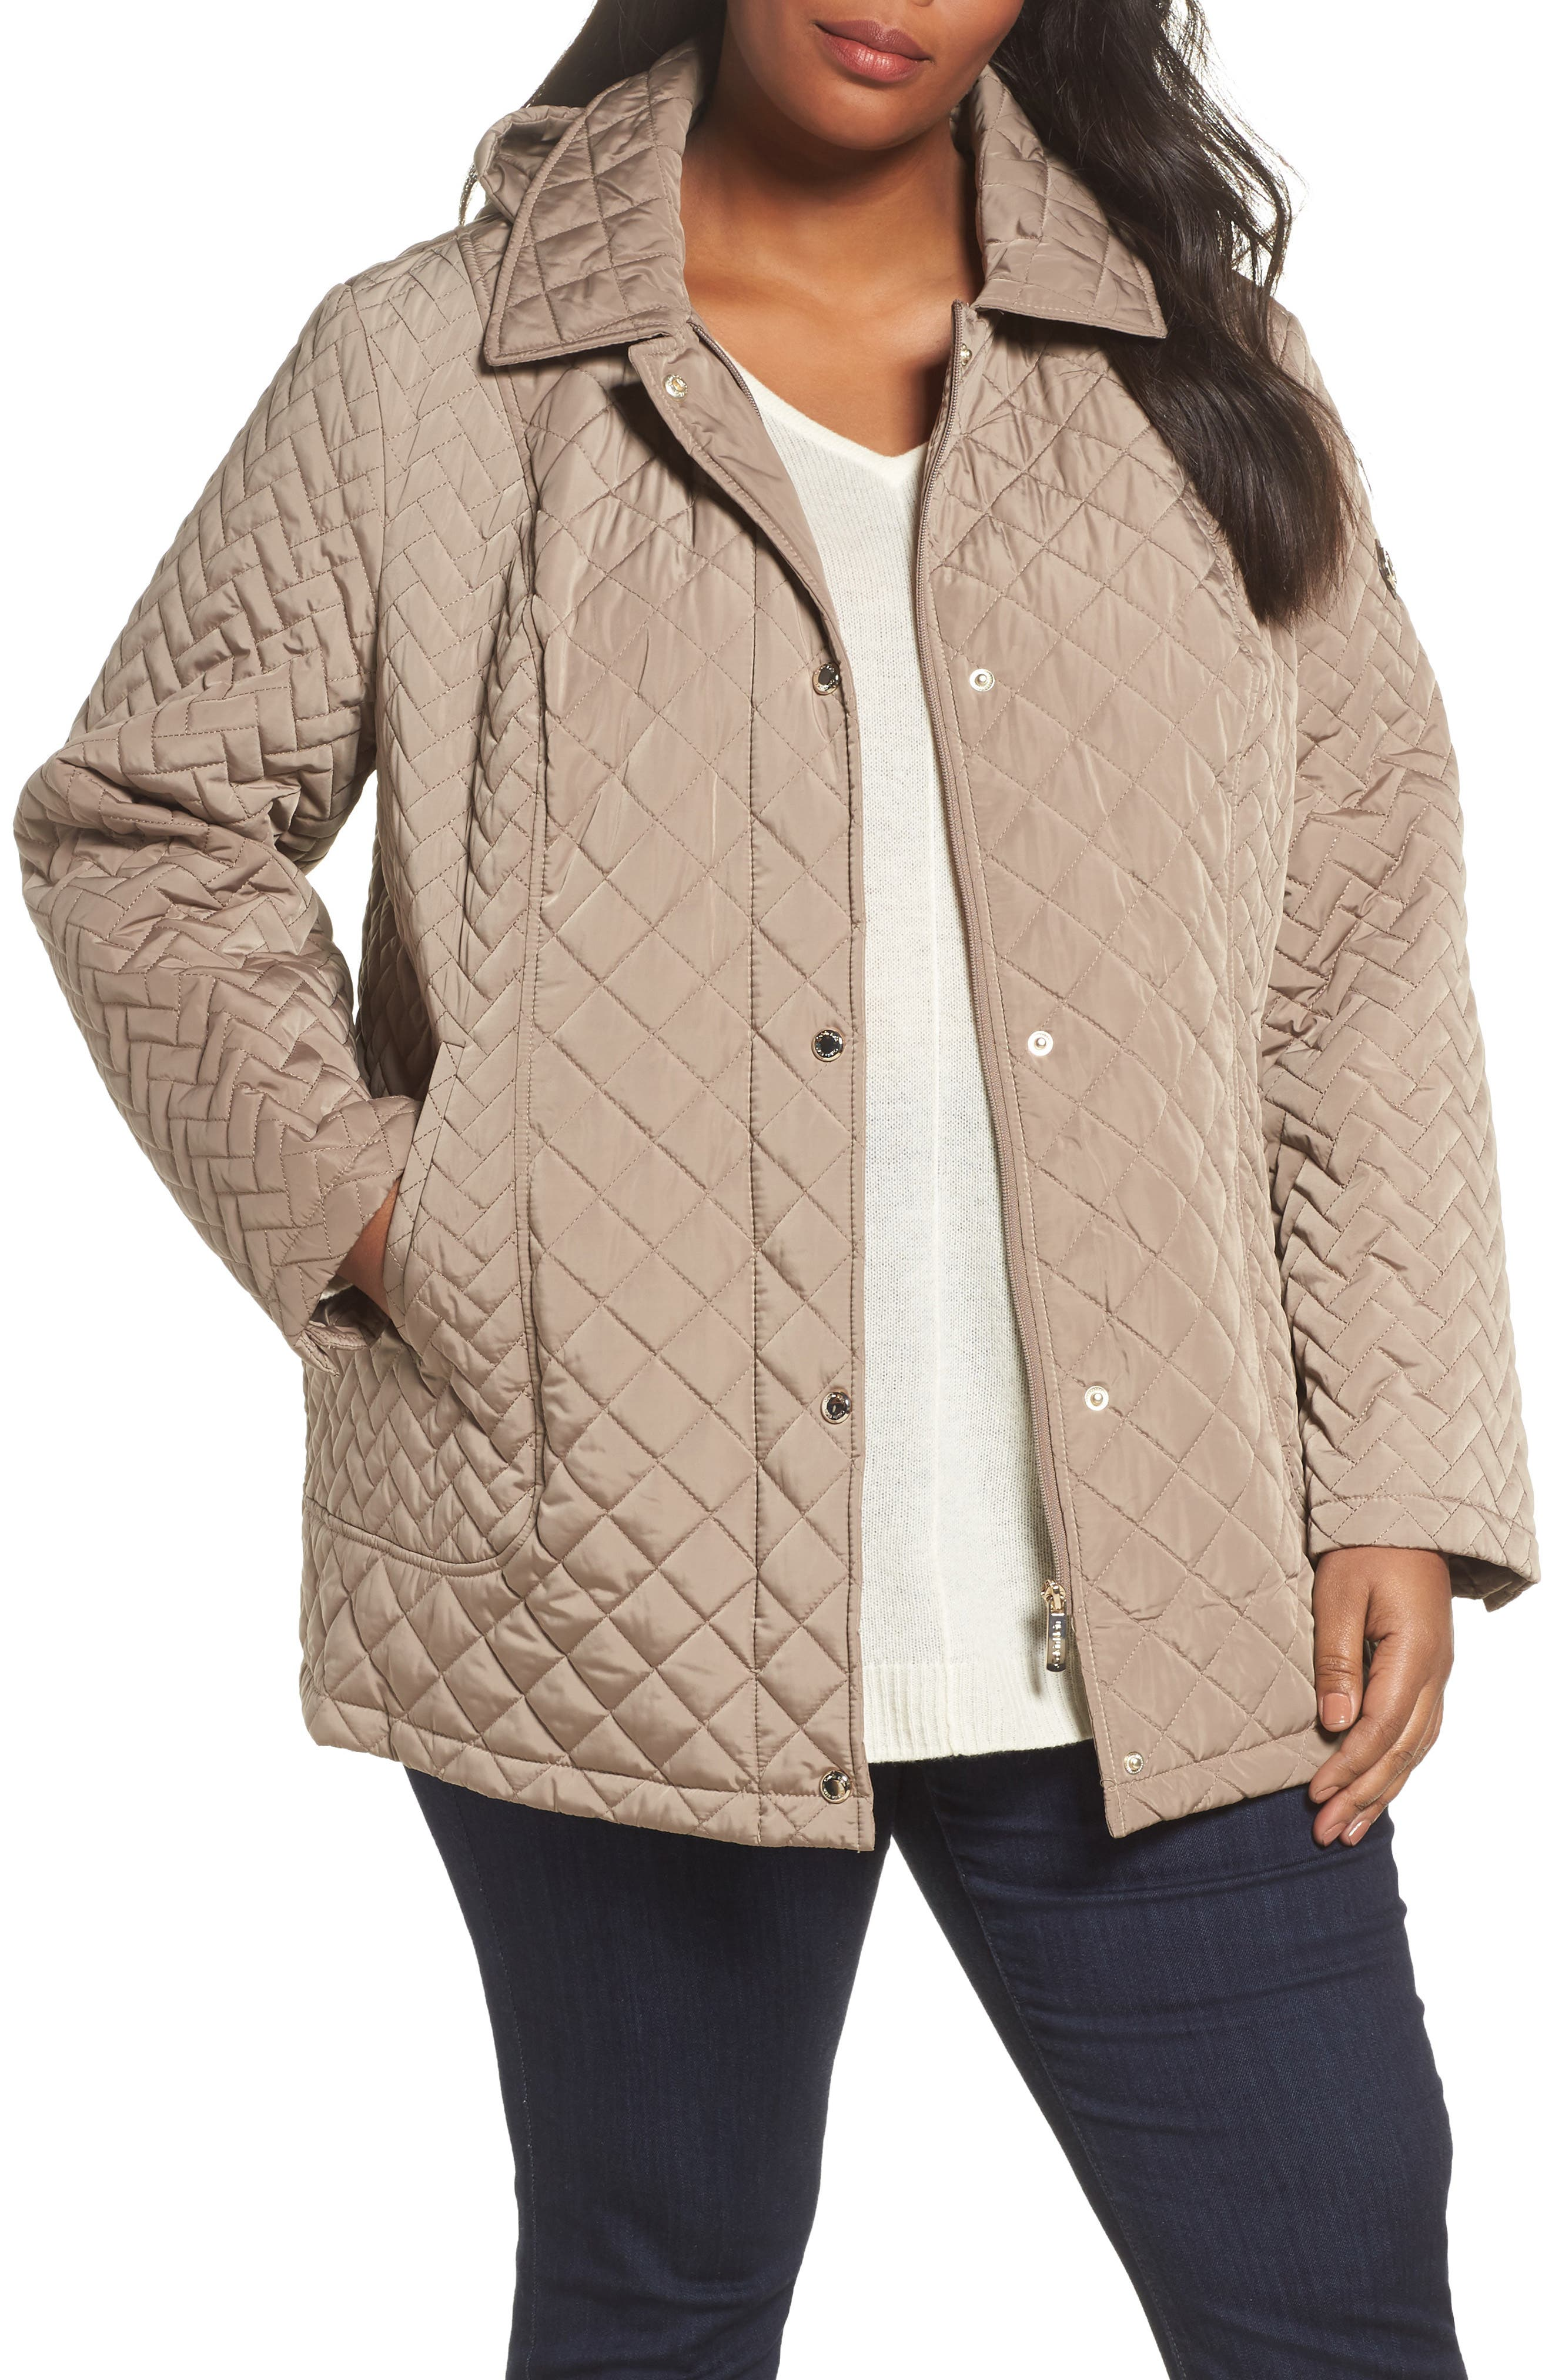 Main Image - Calvin Klein Water Resistant Diamond Quilted Jacket (Plus Size)